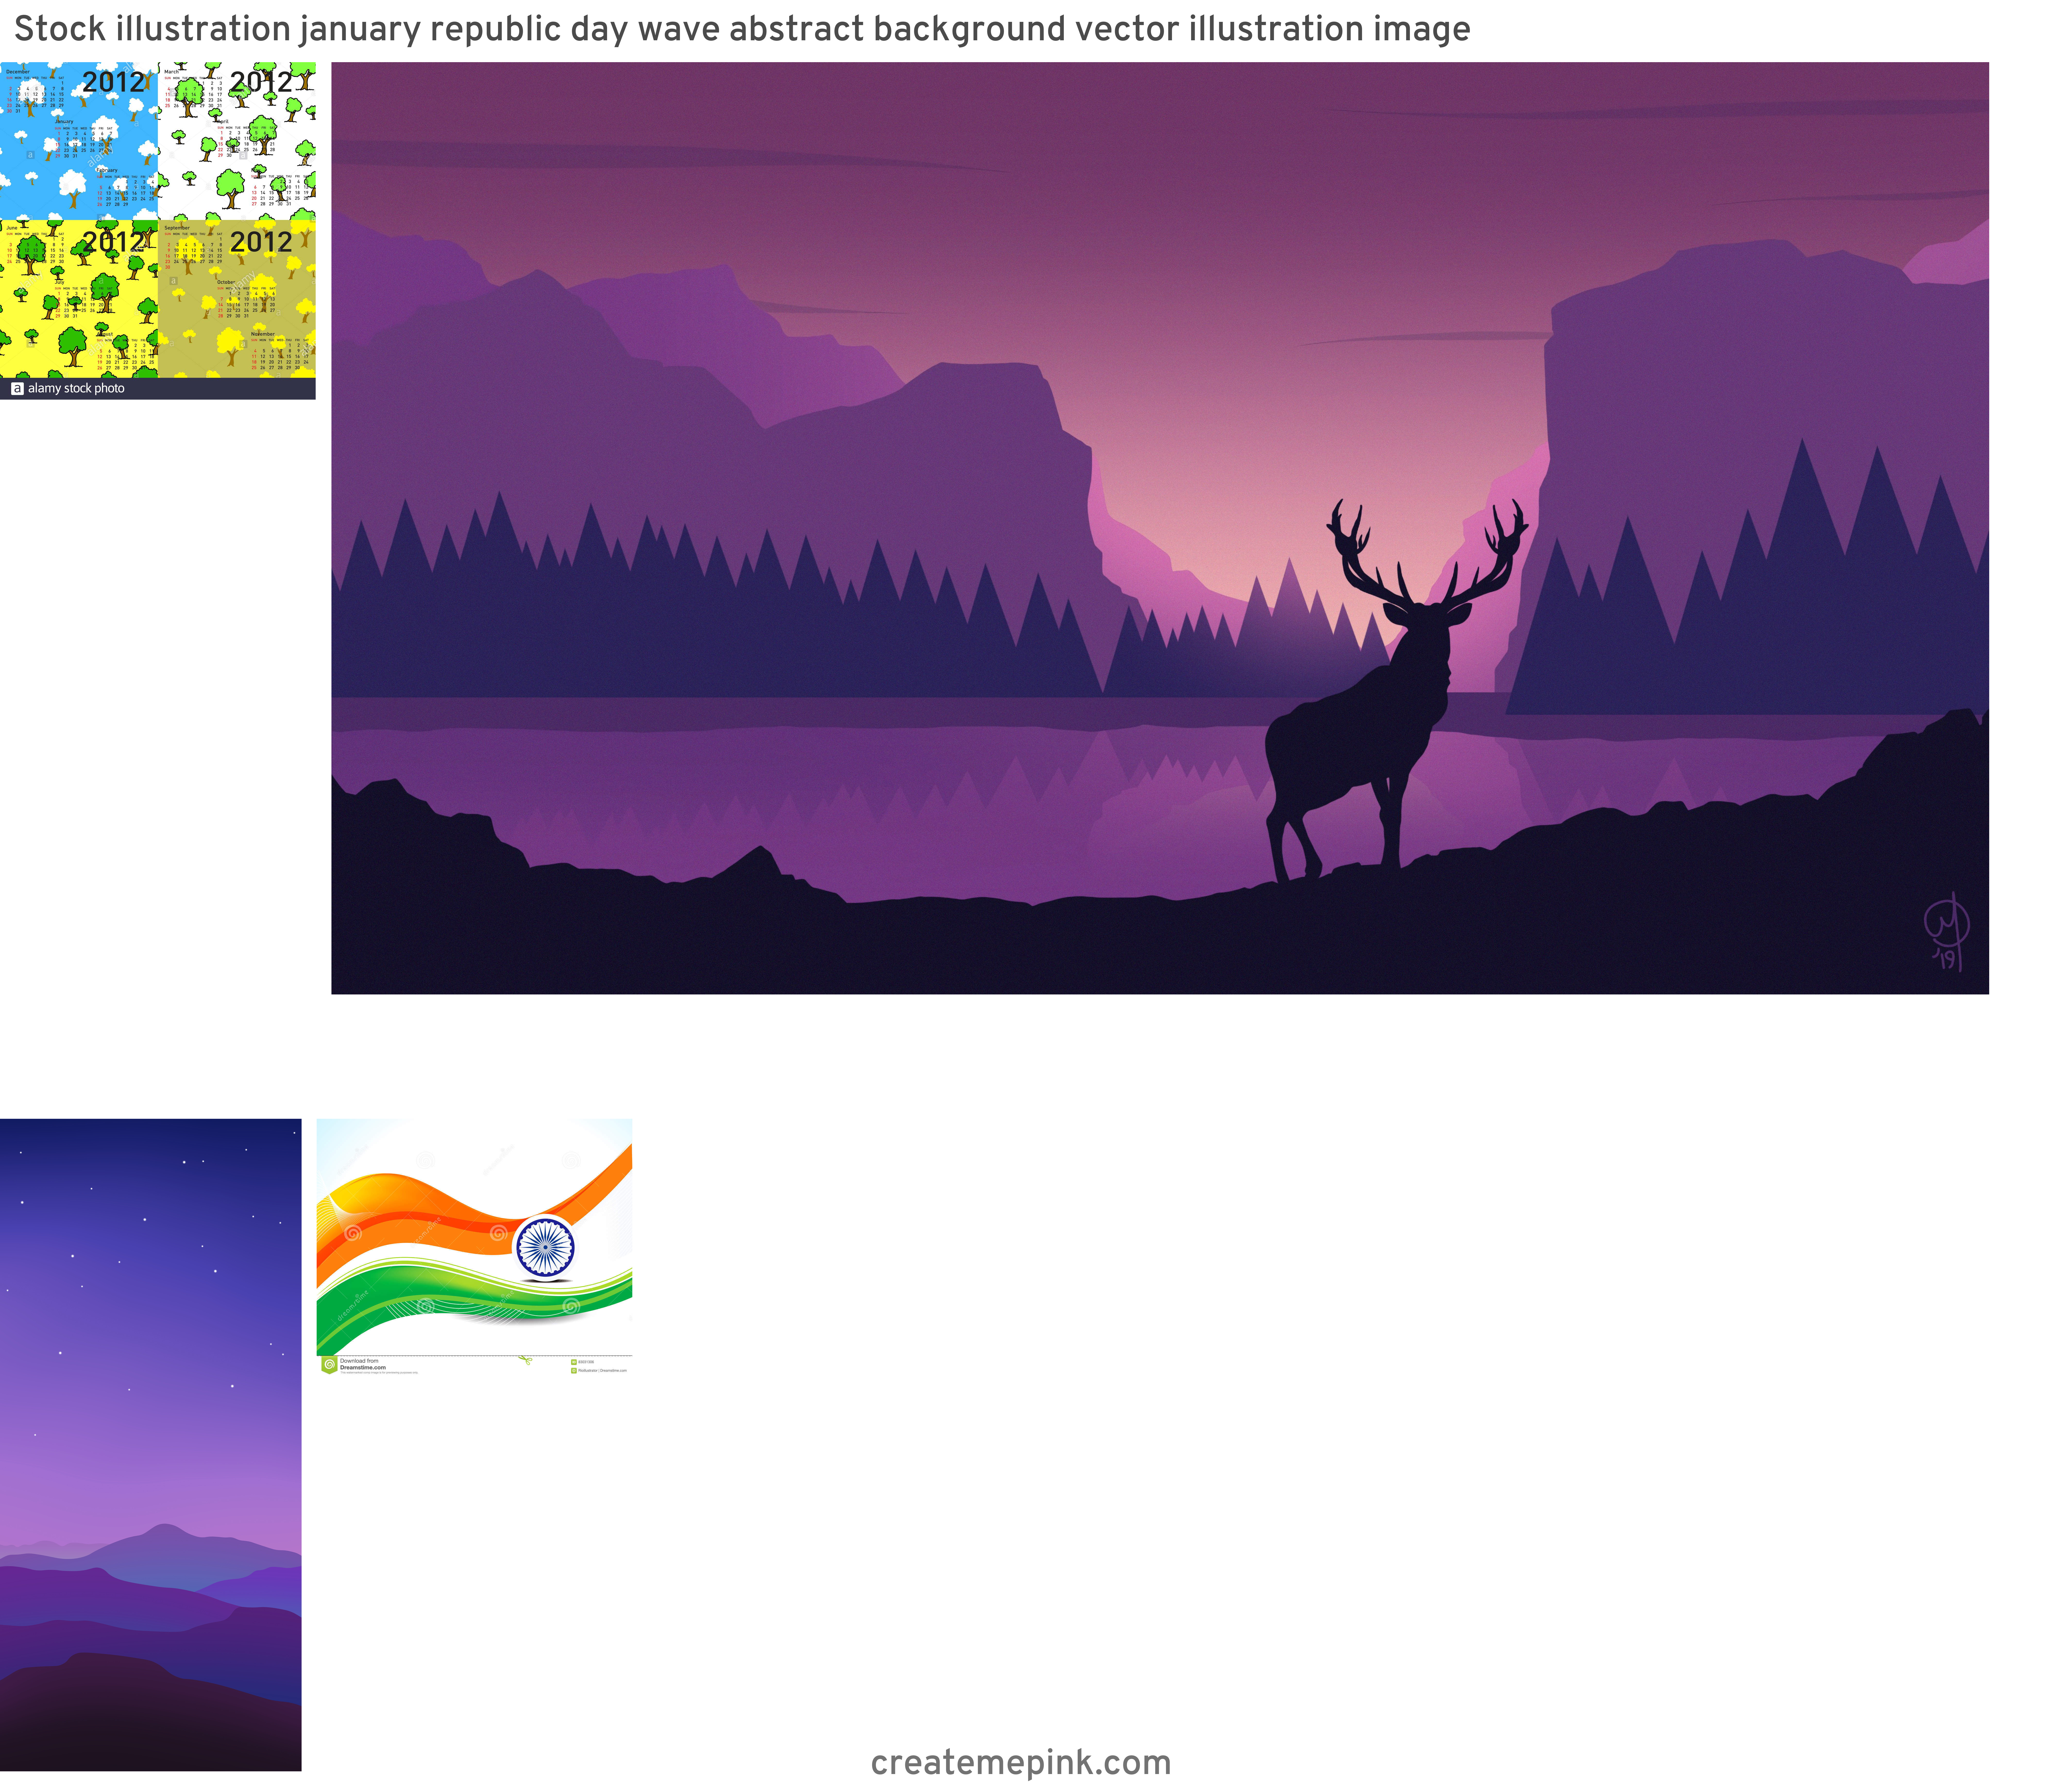 January Wallpaper Vector: Stock Illustration January Republic Day Wave Abstract Background Vector Illustration Image